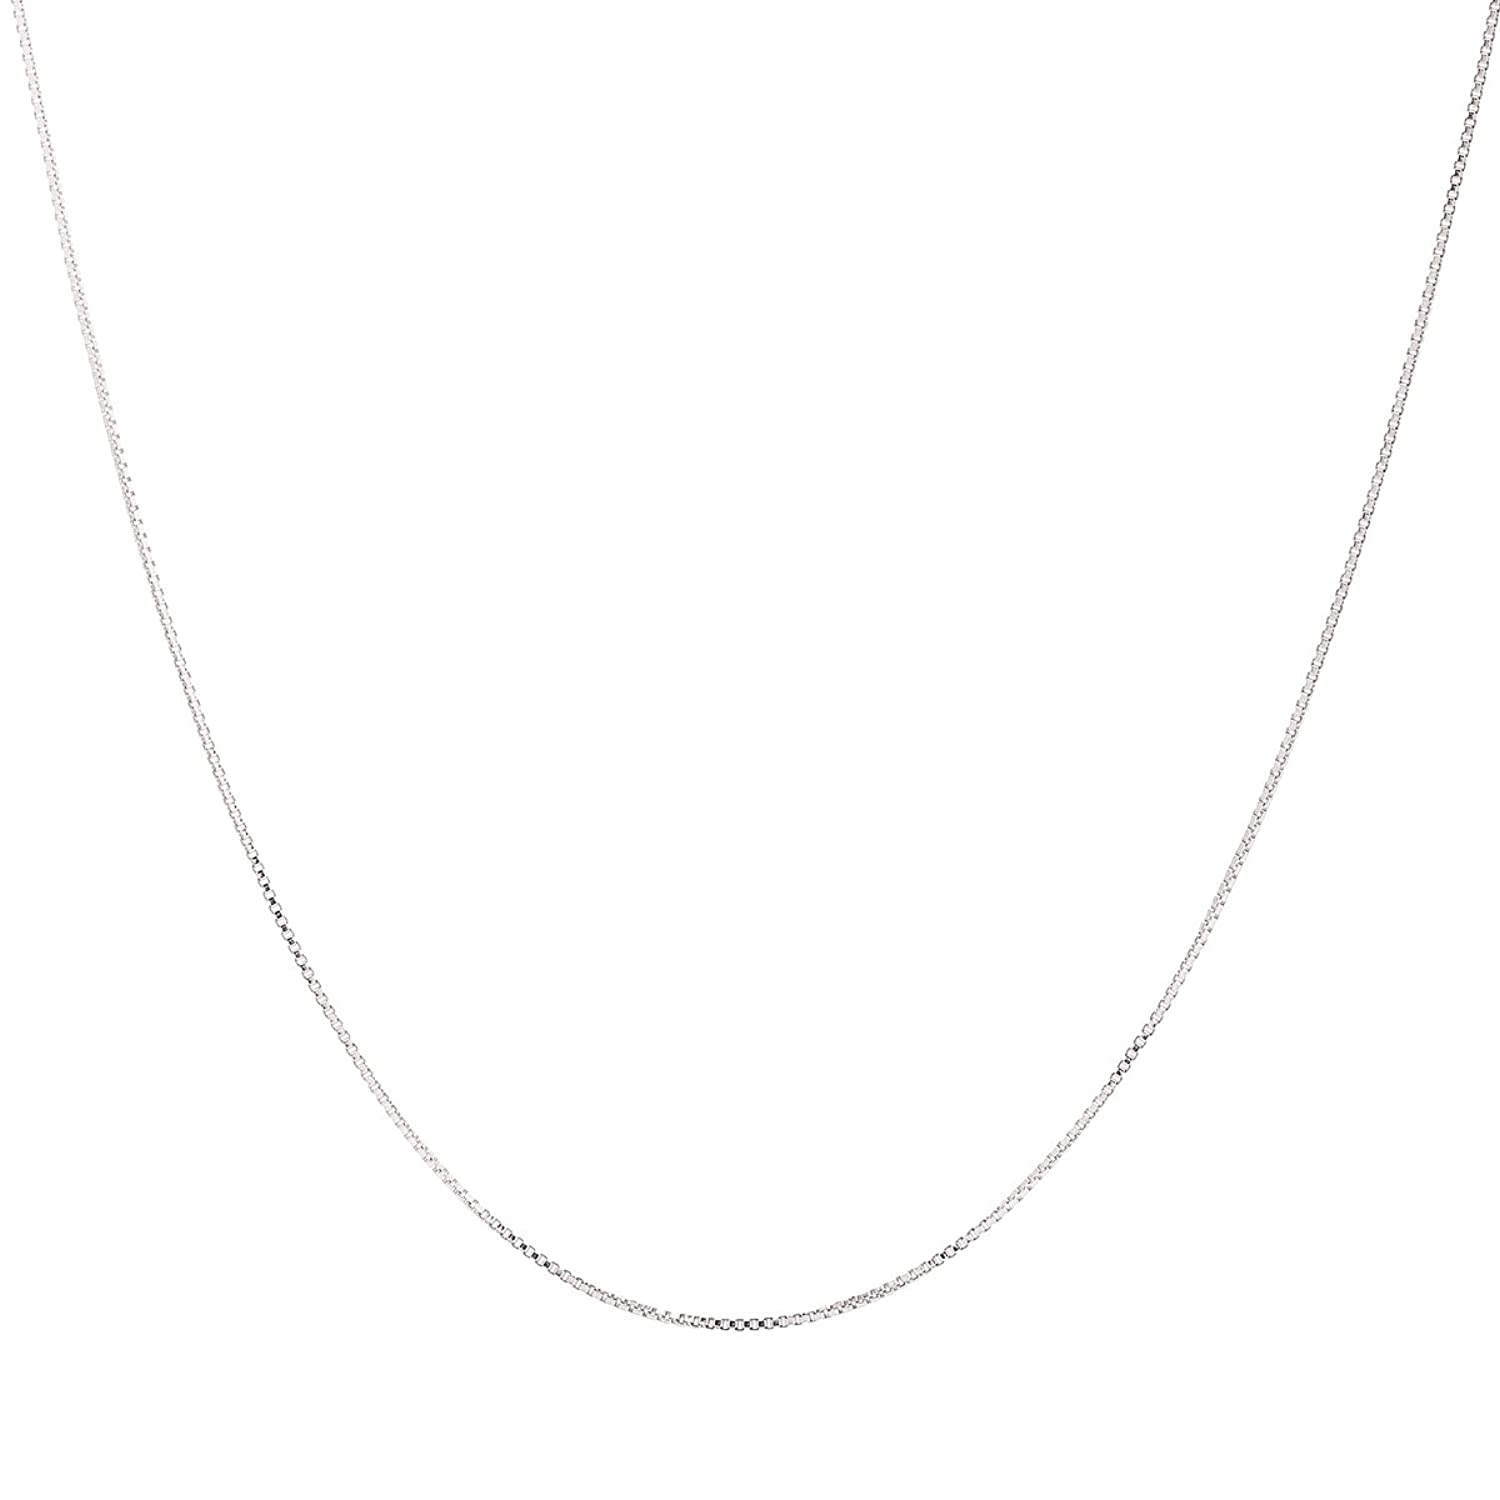 925 Sterling Silver 1MM Box Chain Italian Crafted Necklace Thin Lightweight Strong - Spring Ring Clasp